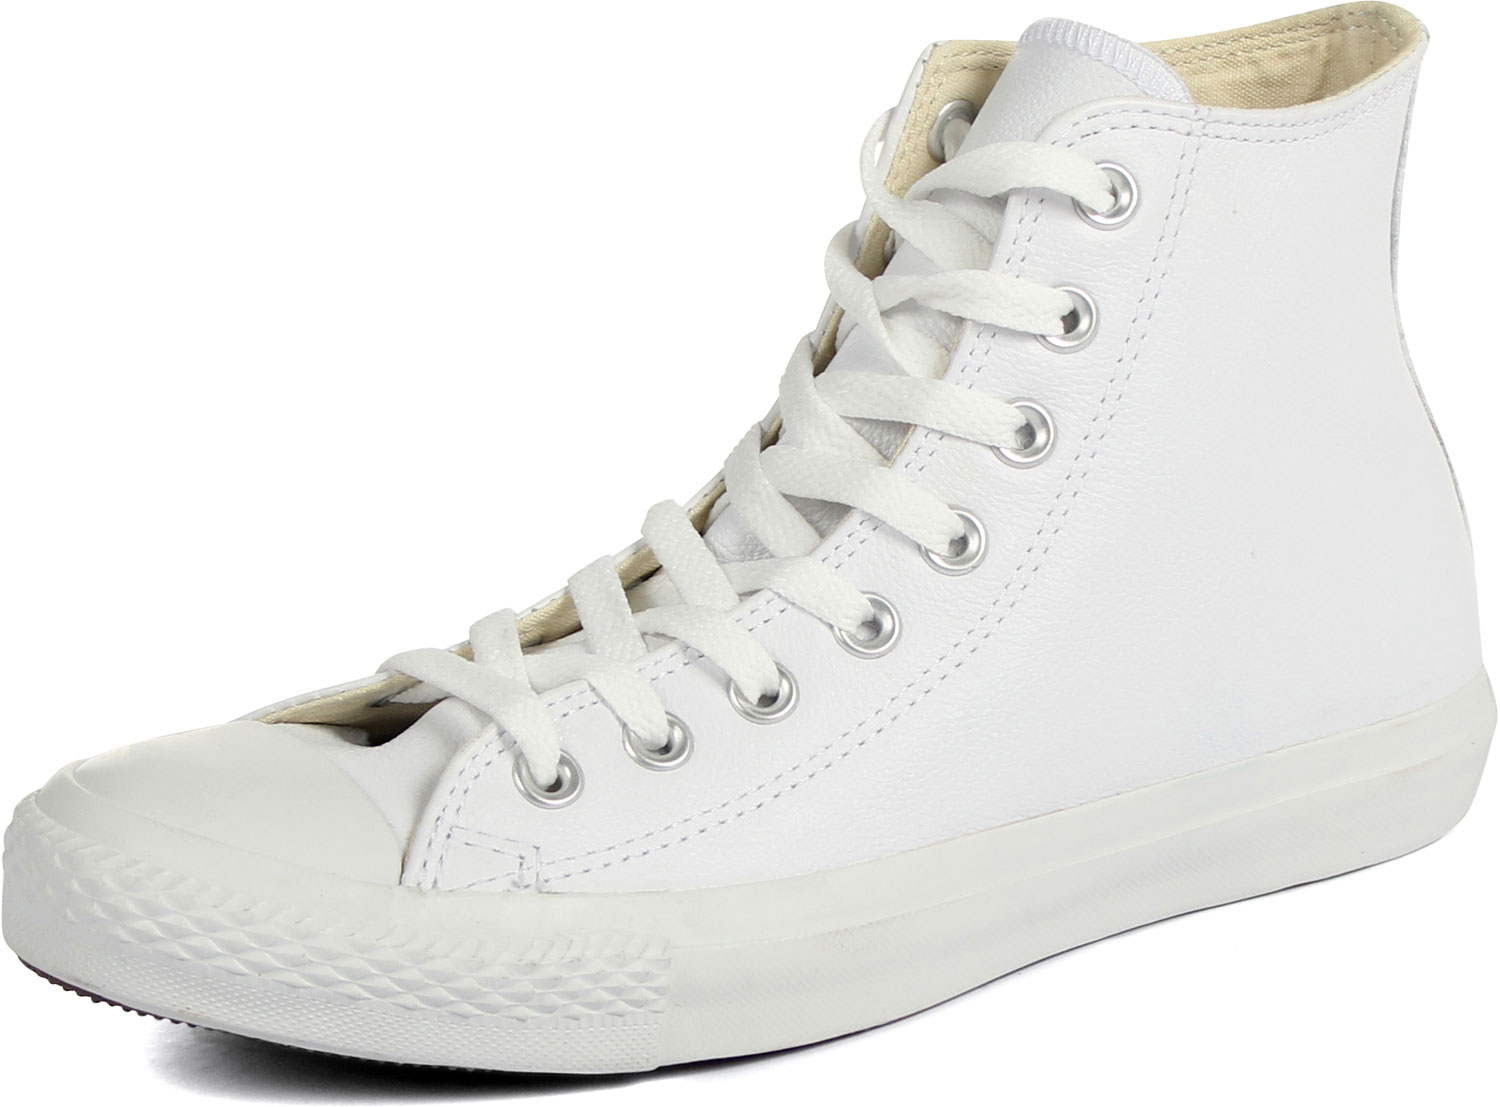 4013dc5aad5bb0 Converse Chuck Taylor All Star Shoes (1T406) Leather Hi White ...